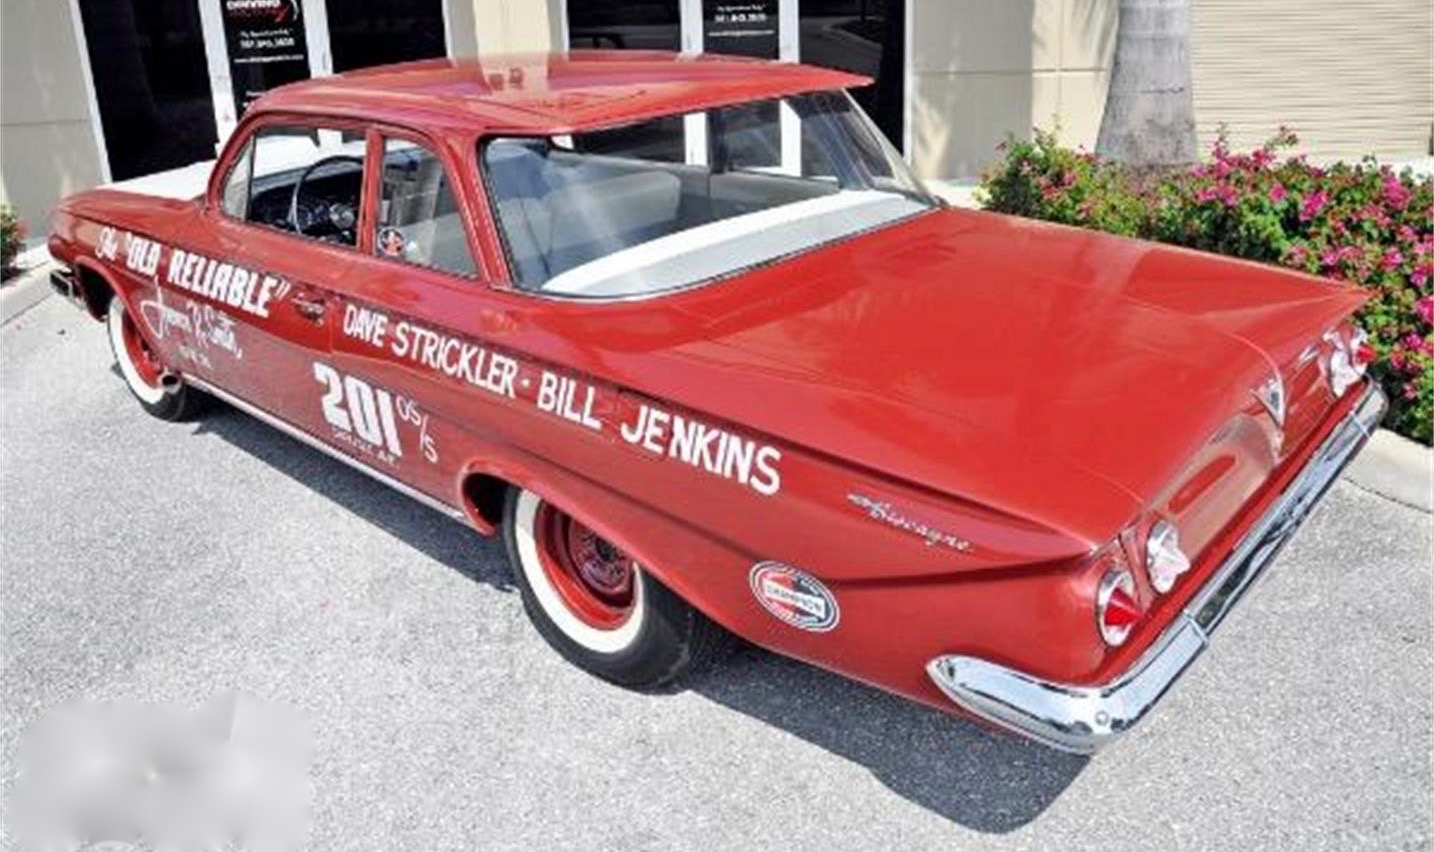 1961 Chevrolet Biscayne, '61 Chevy is tribute to legacy of Bill 'Grumpy' Jenkins, ClassicCars.com Journal